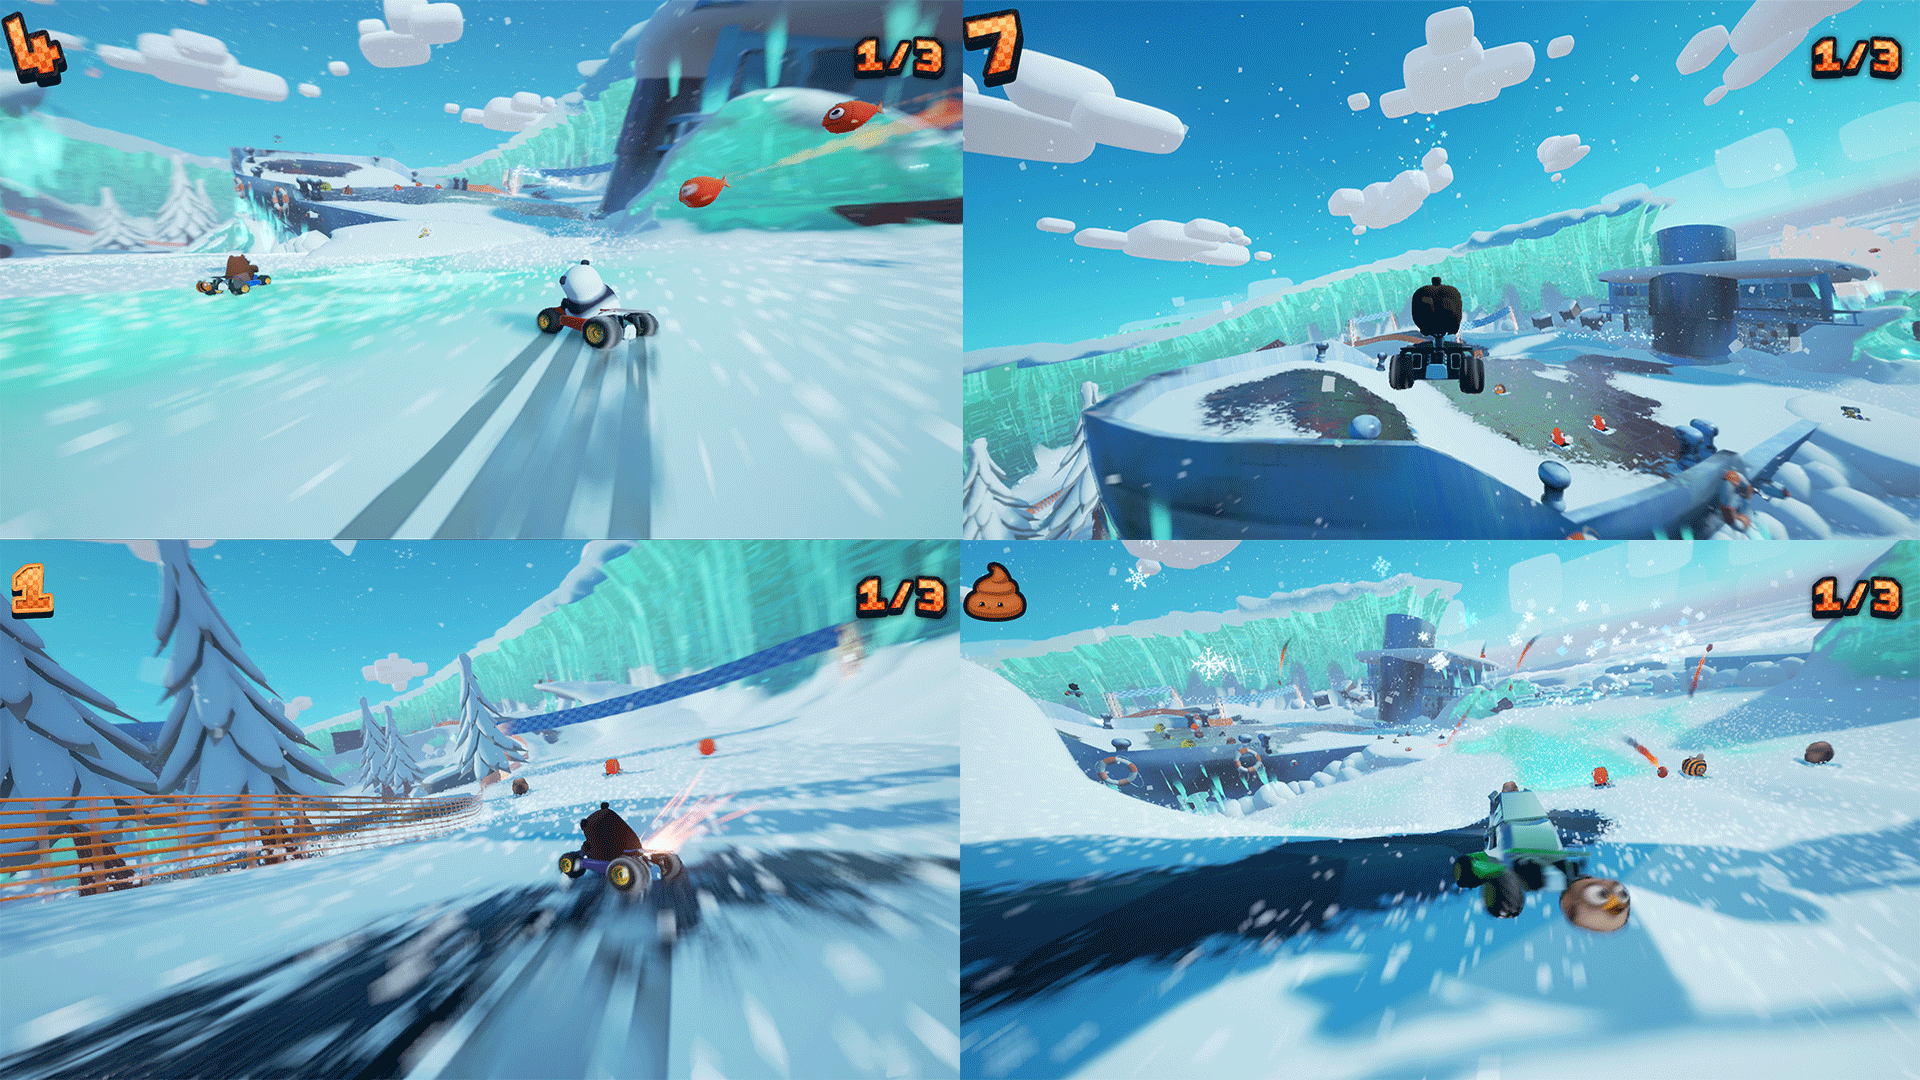 Bears Can't Drift!? brings back four player split screen in kart racing games